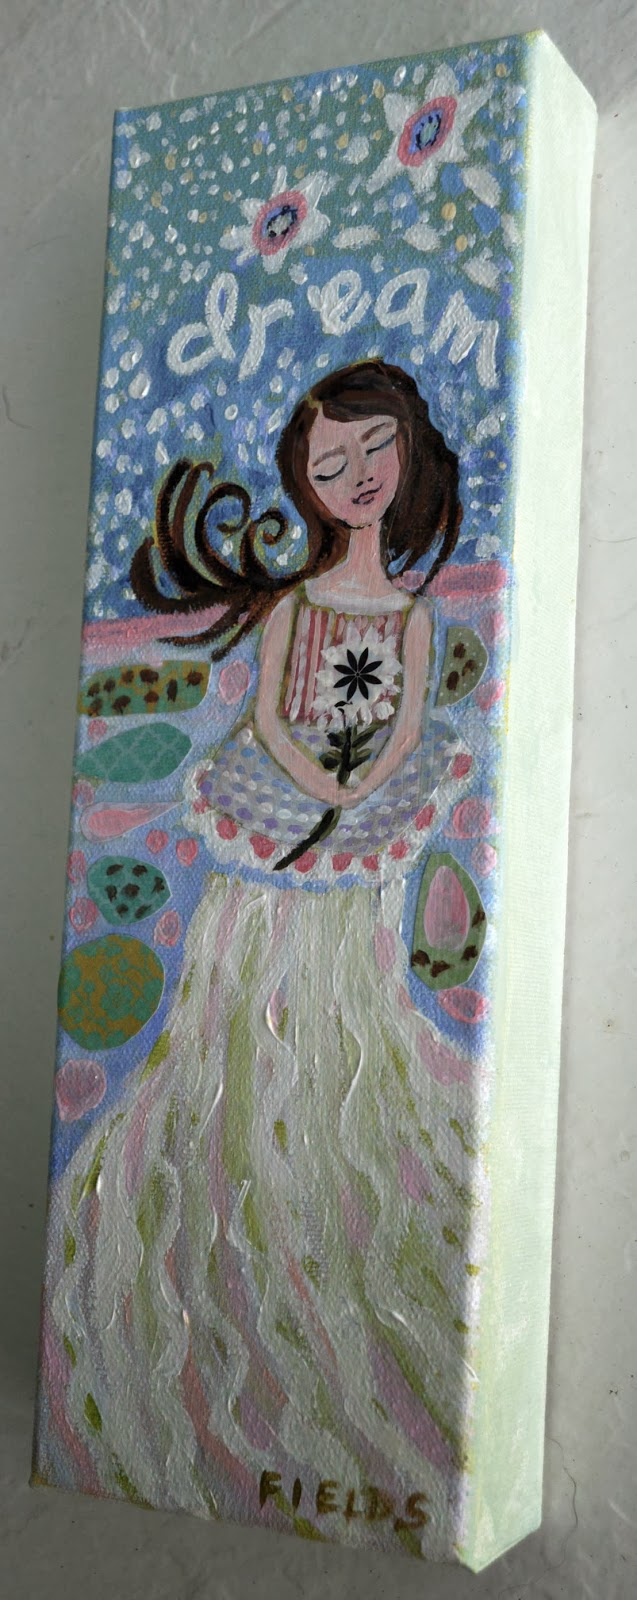 https://www.etsy.com/listing/174706729/mixed-media-painting-whimsical-girl-art?ref=shop_home_active